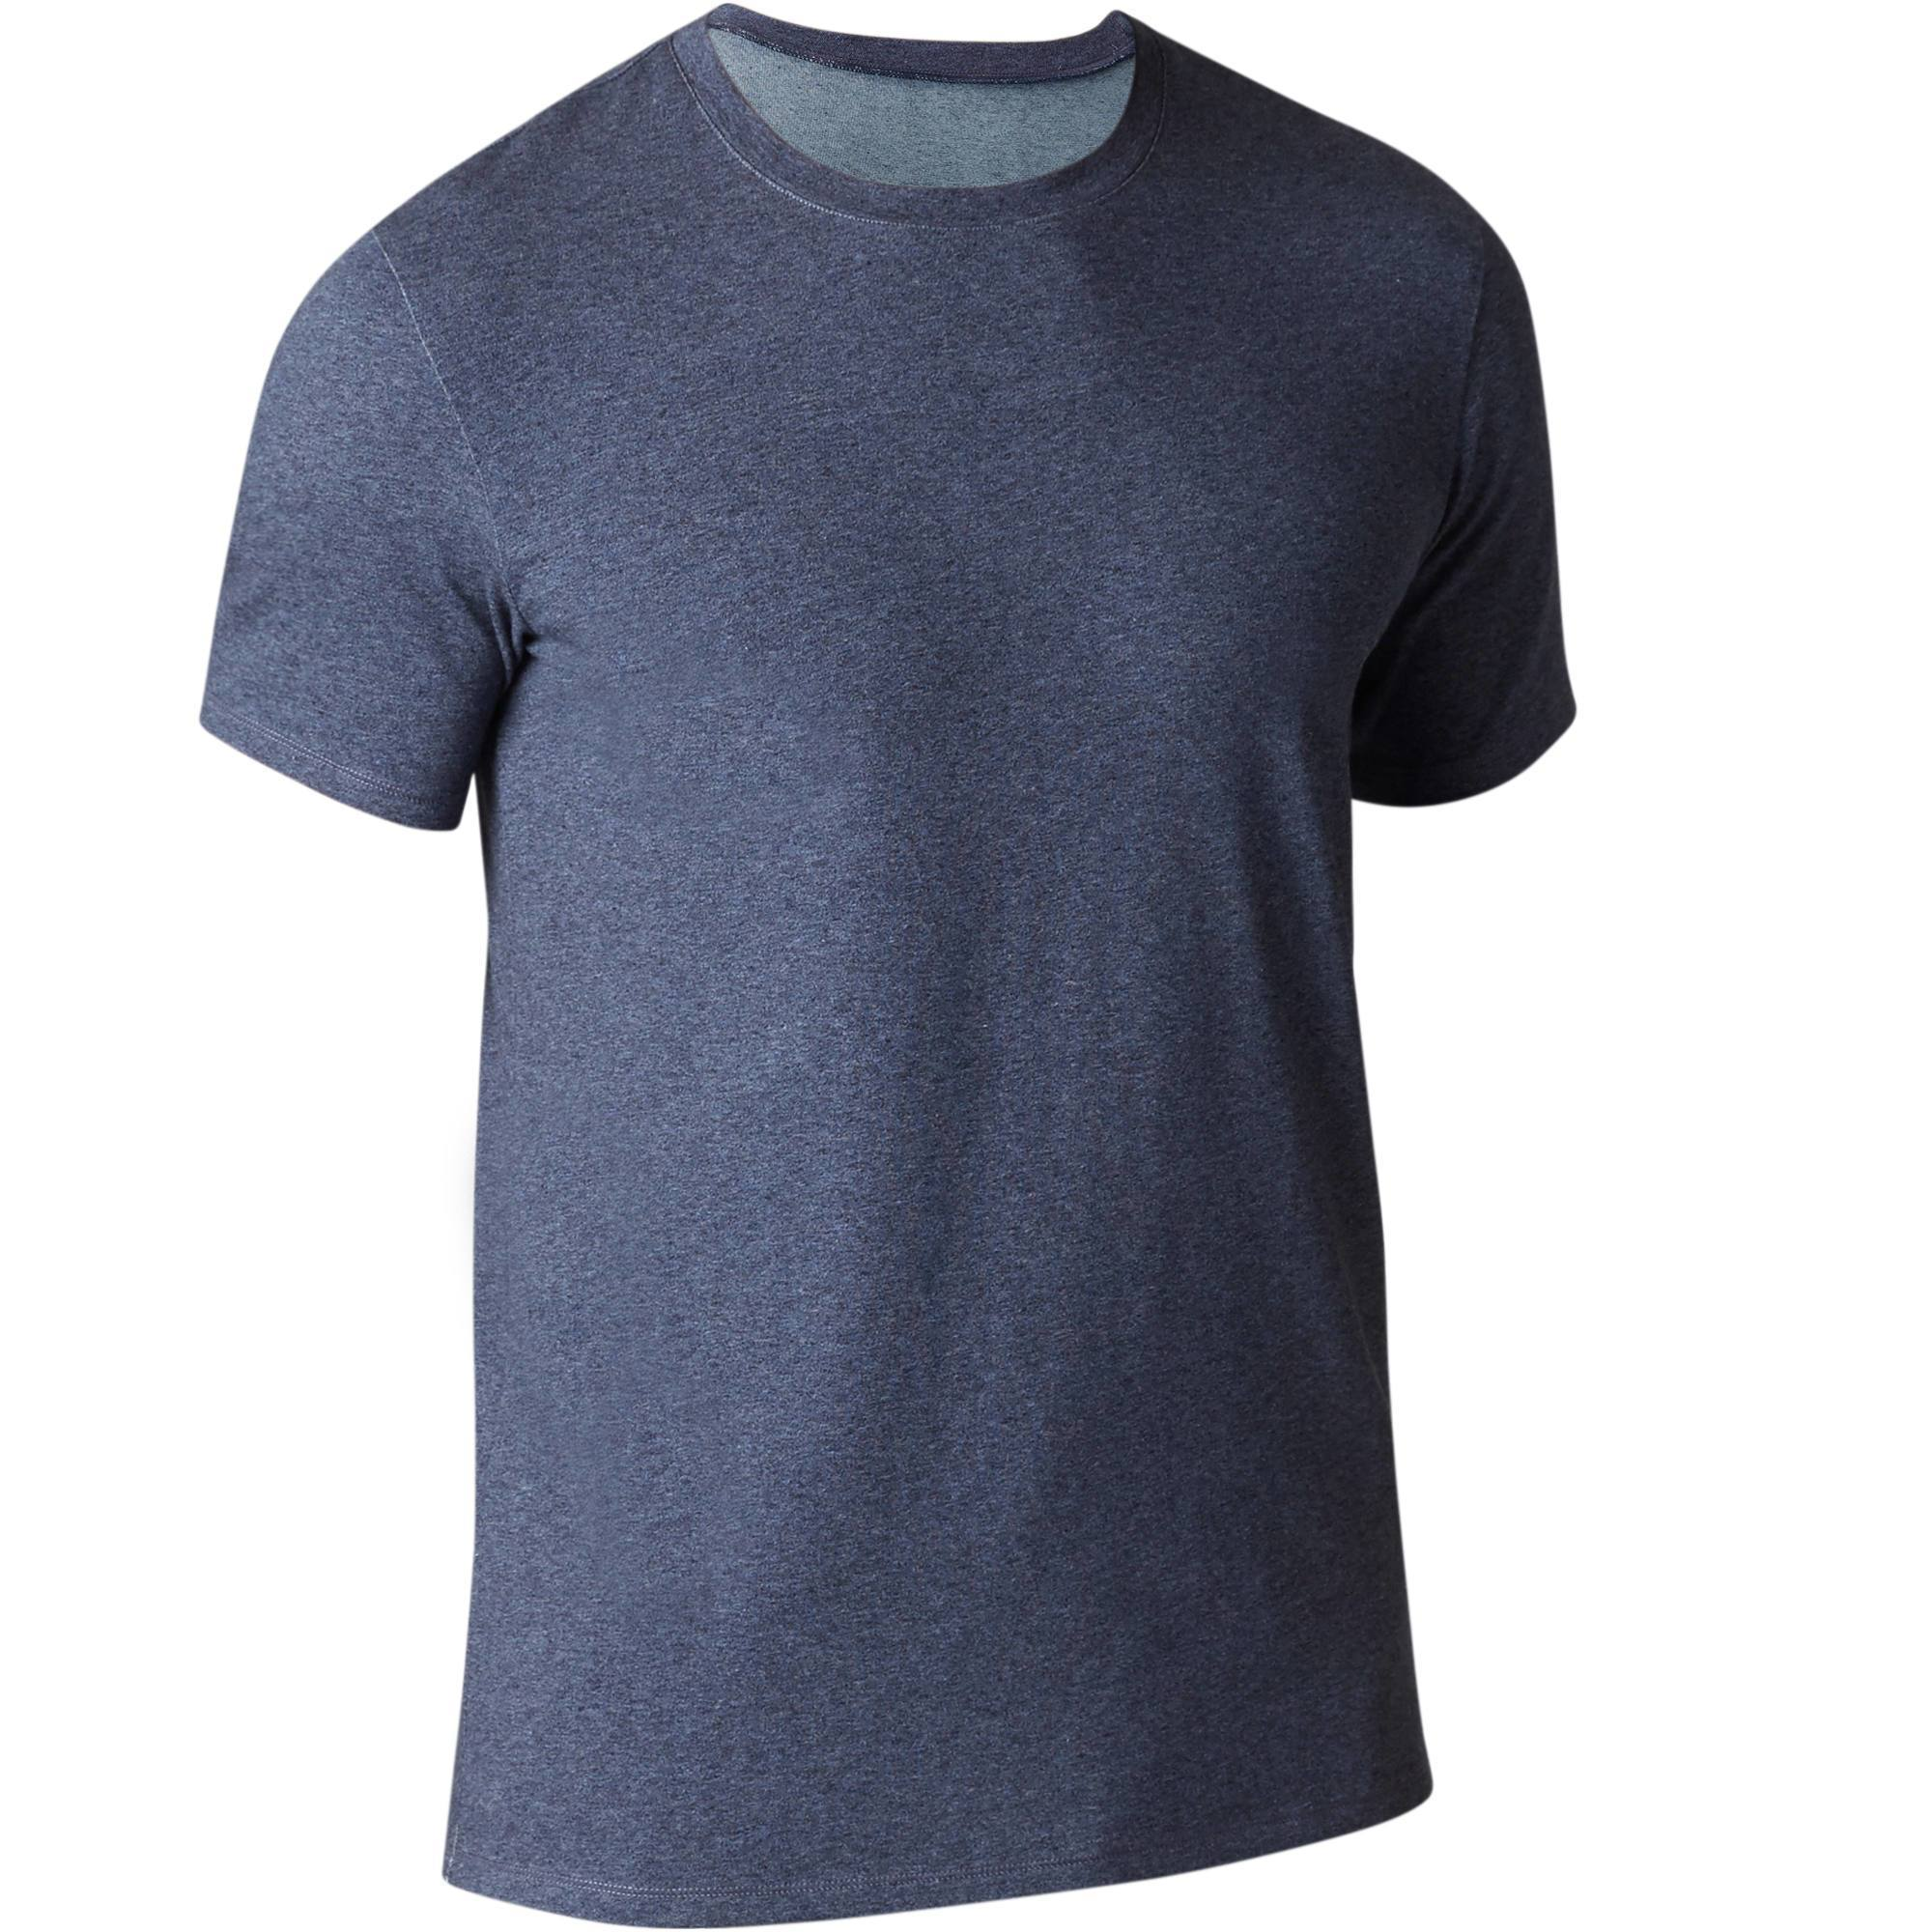 T-shirt 500 regular Gym Stretching homme bleu